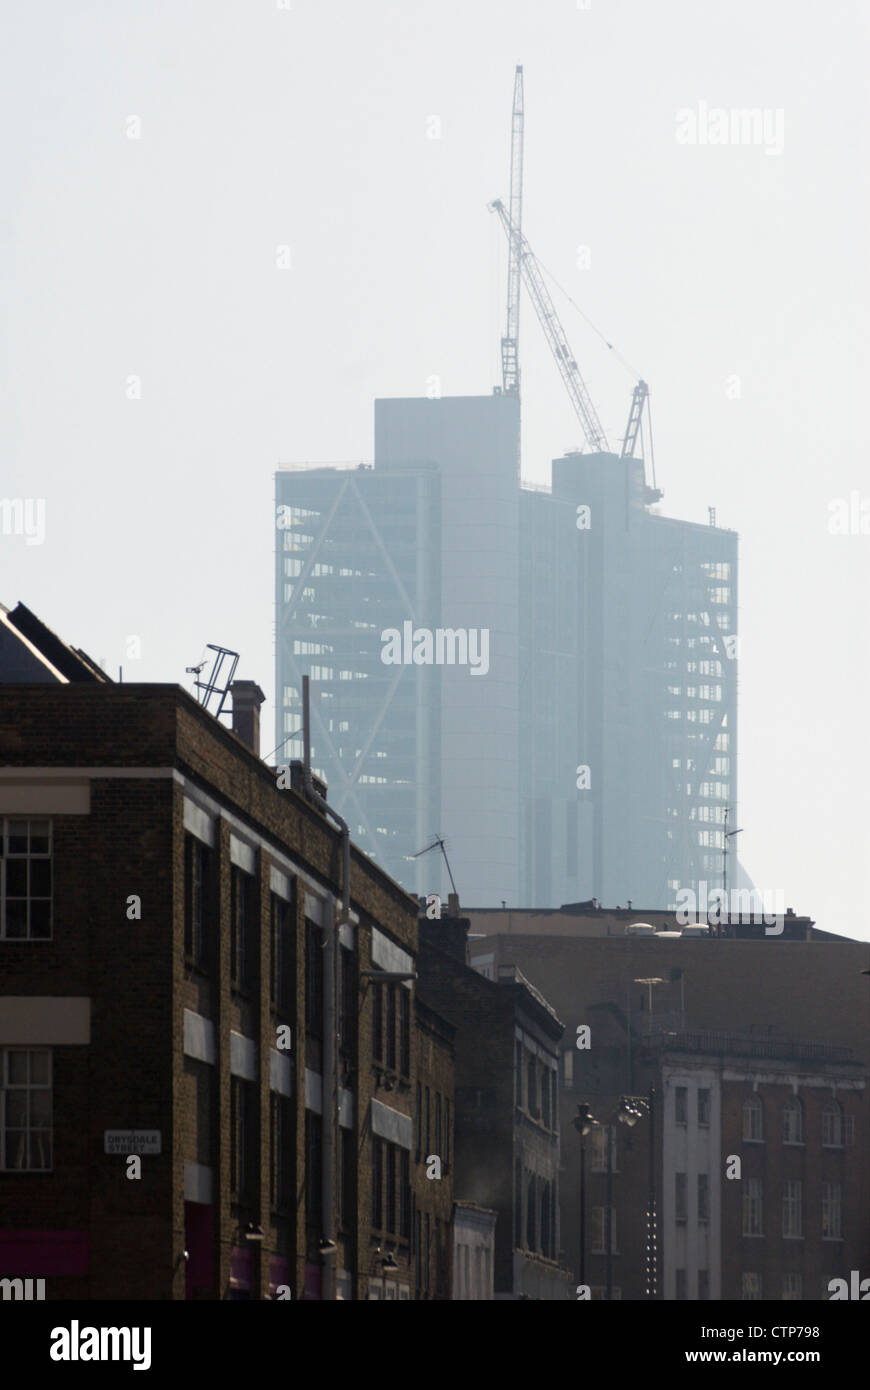 201 Bishopsgate & Broadgate Tower under construction, City of London, UK. - Stock Image